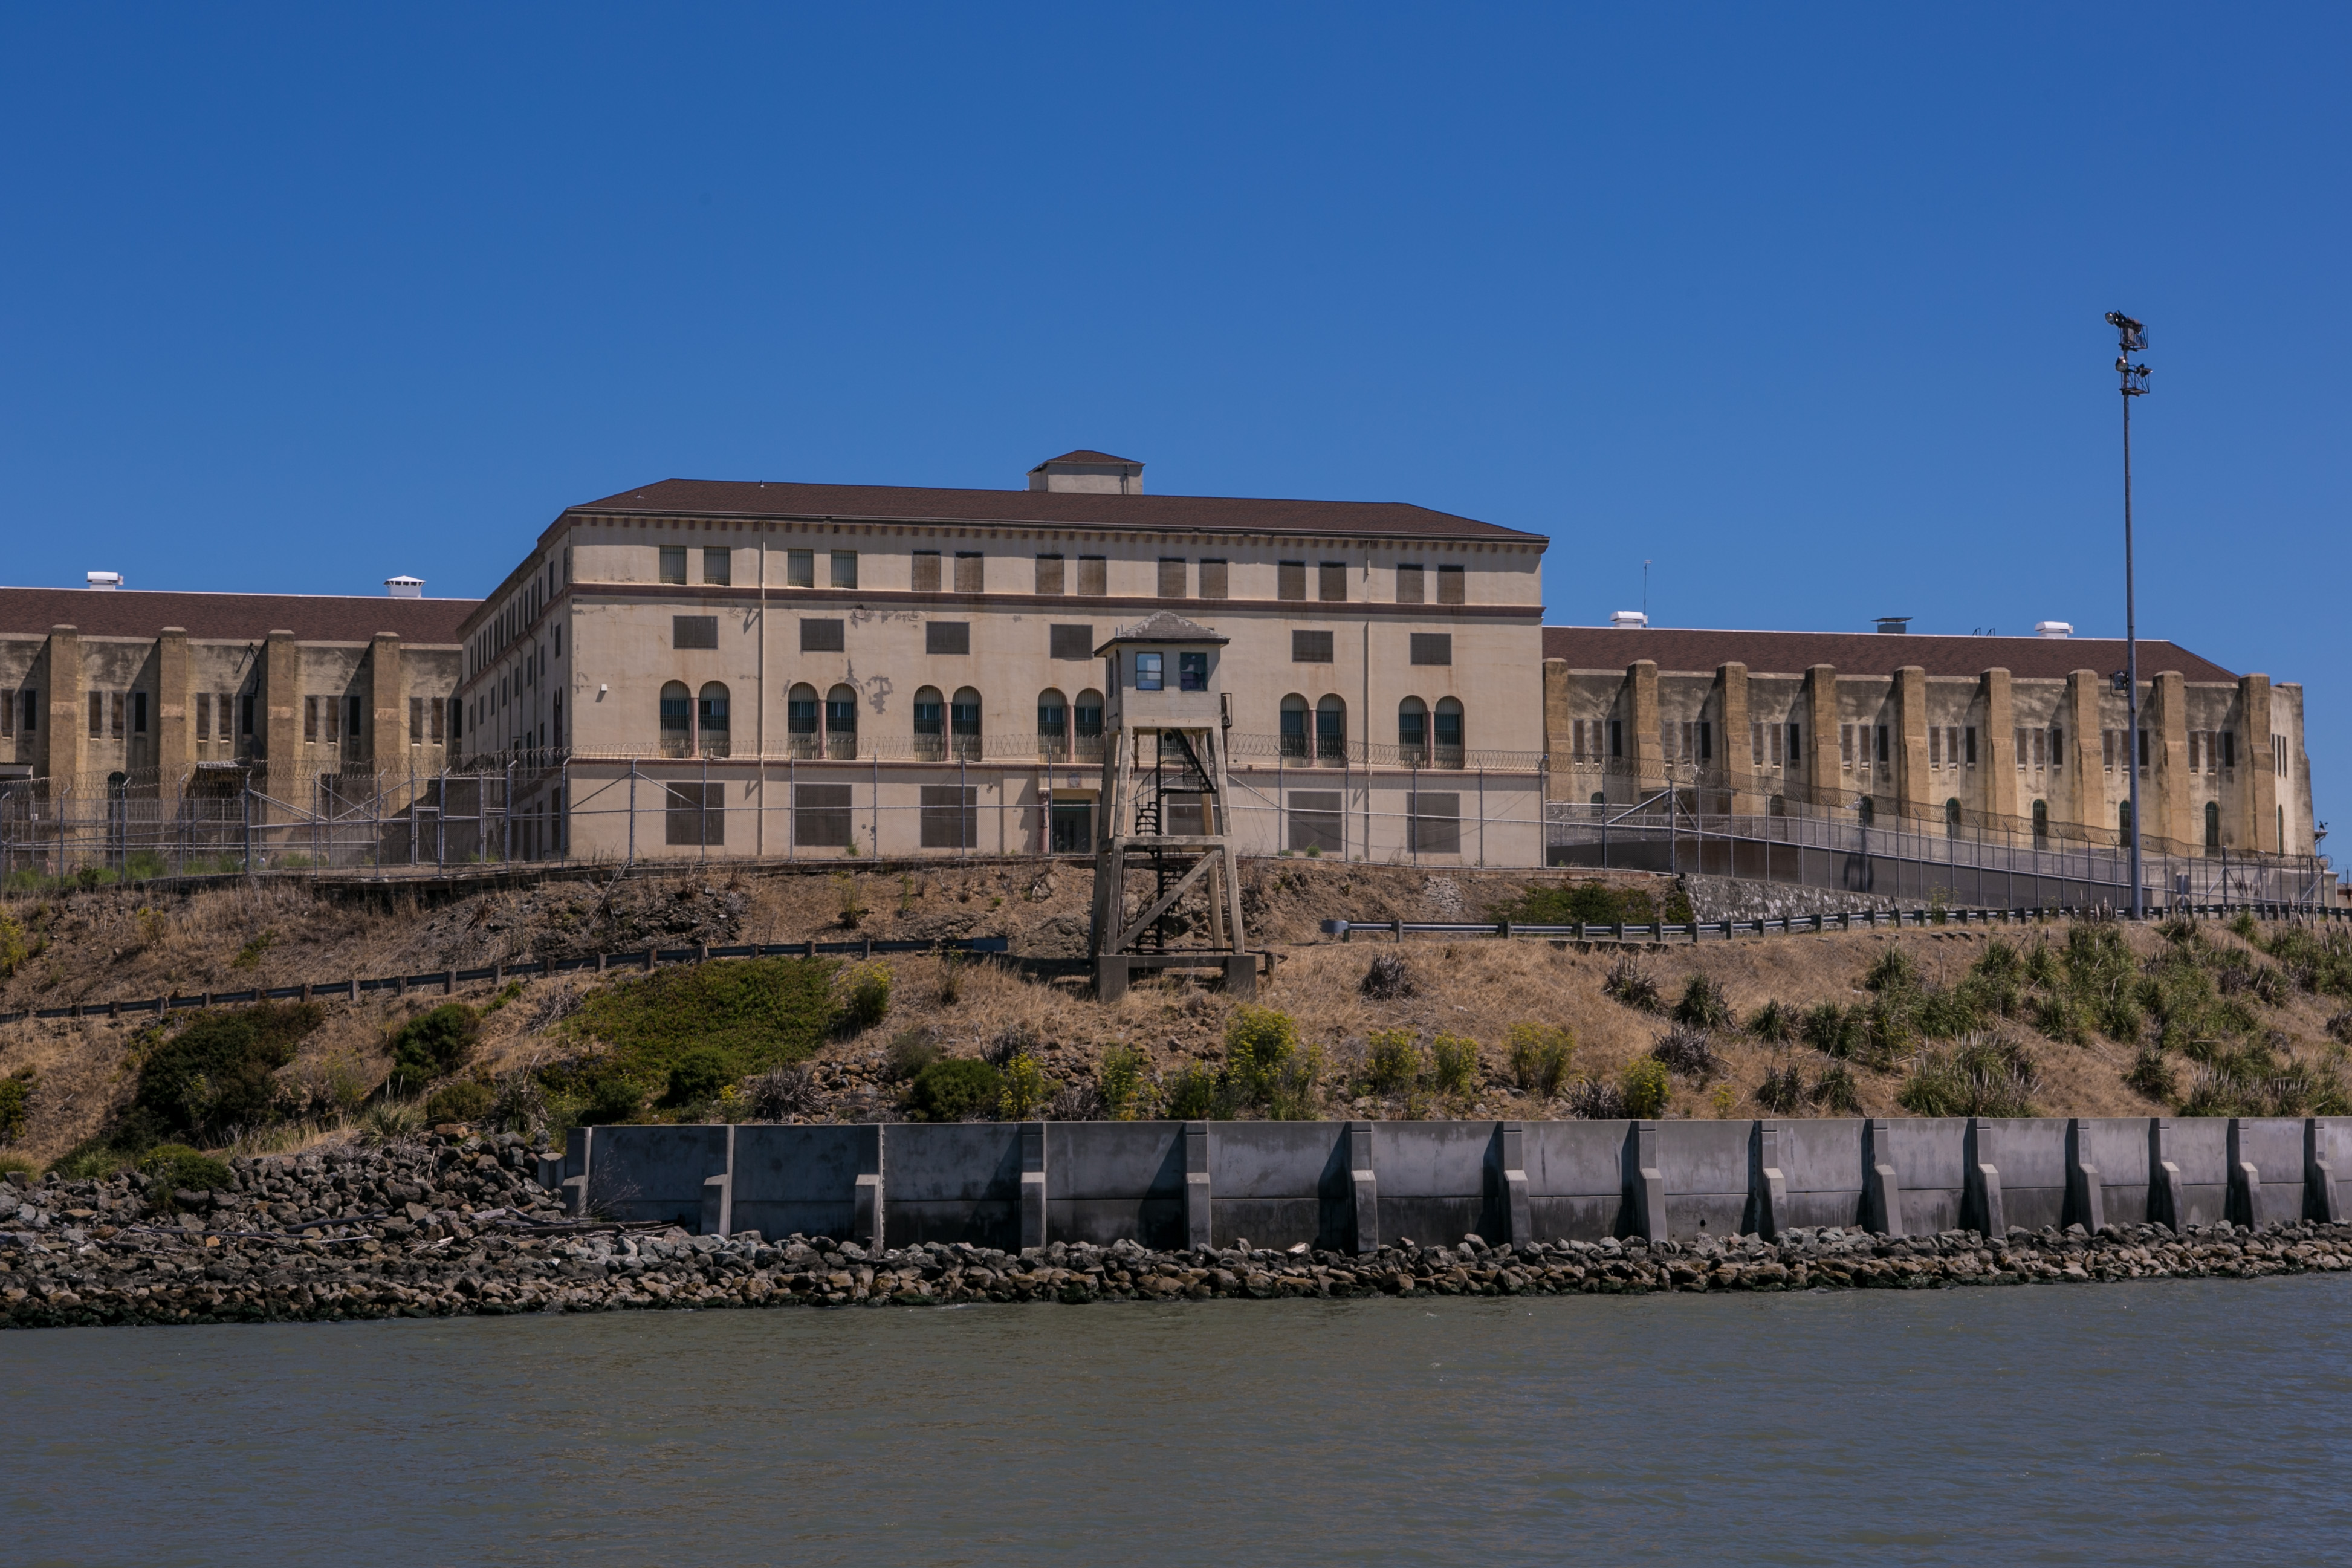 San Quentin Prison shown on July 10, 2013, in Larkspur, Califo.